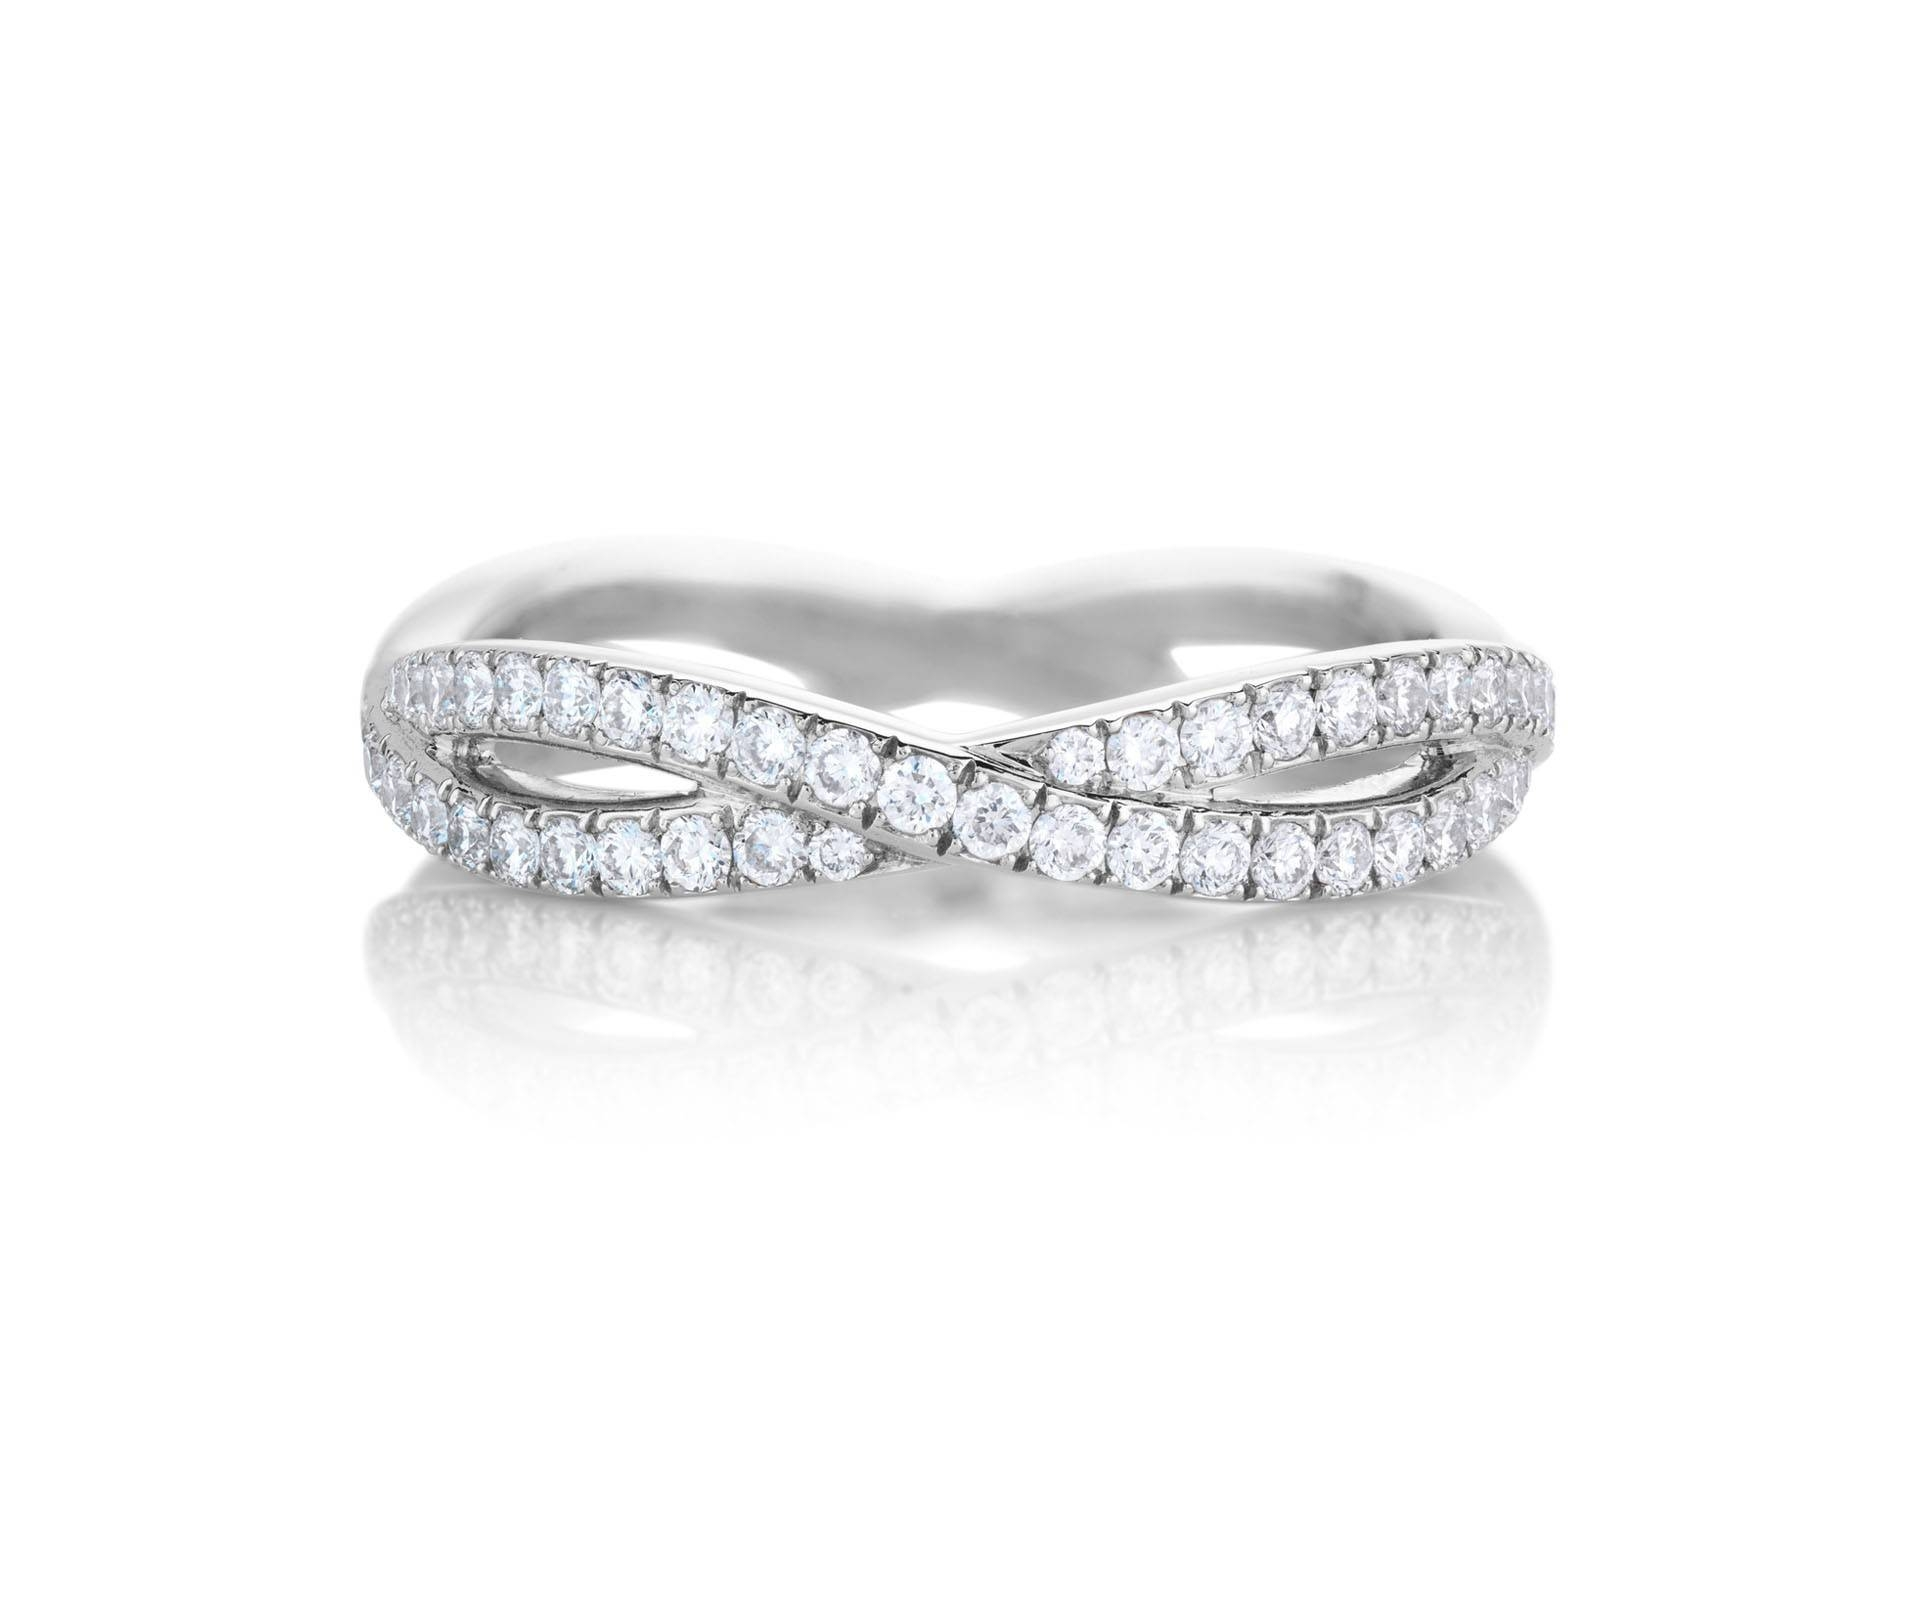 De Beers Infinity | Jewellery Regarding Infinity Band Wedding Rings (View 3 of 15)